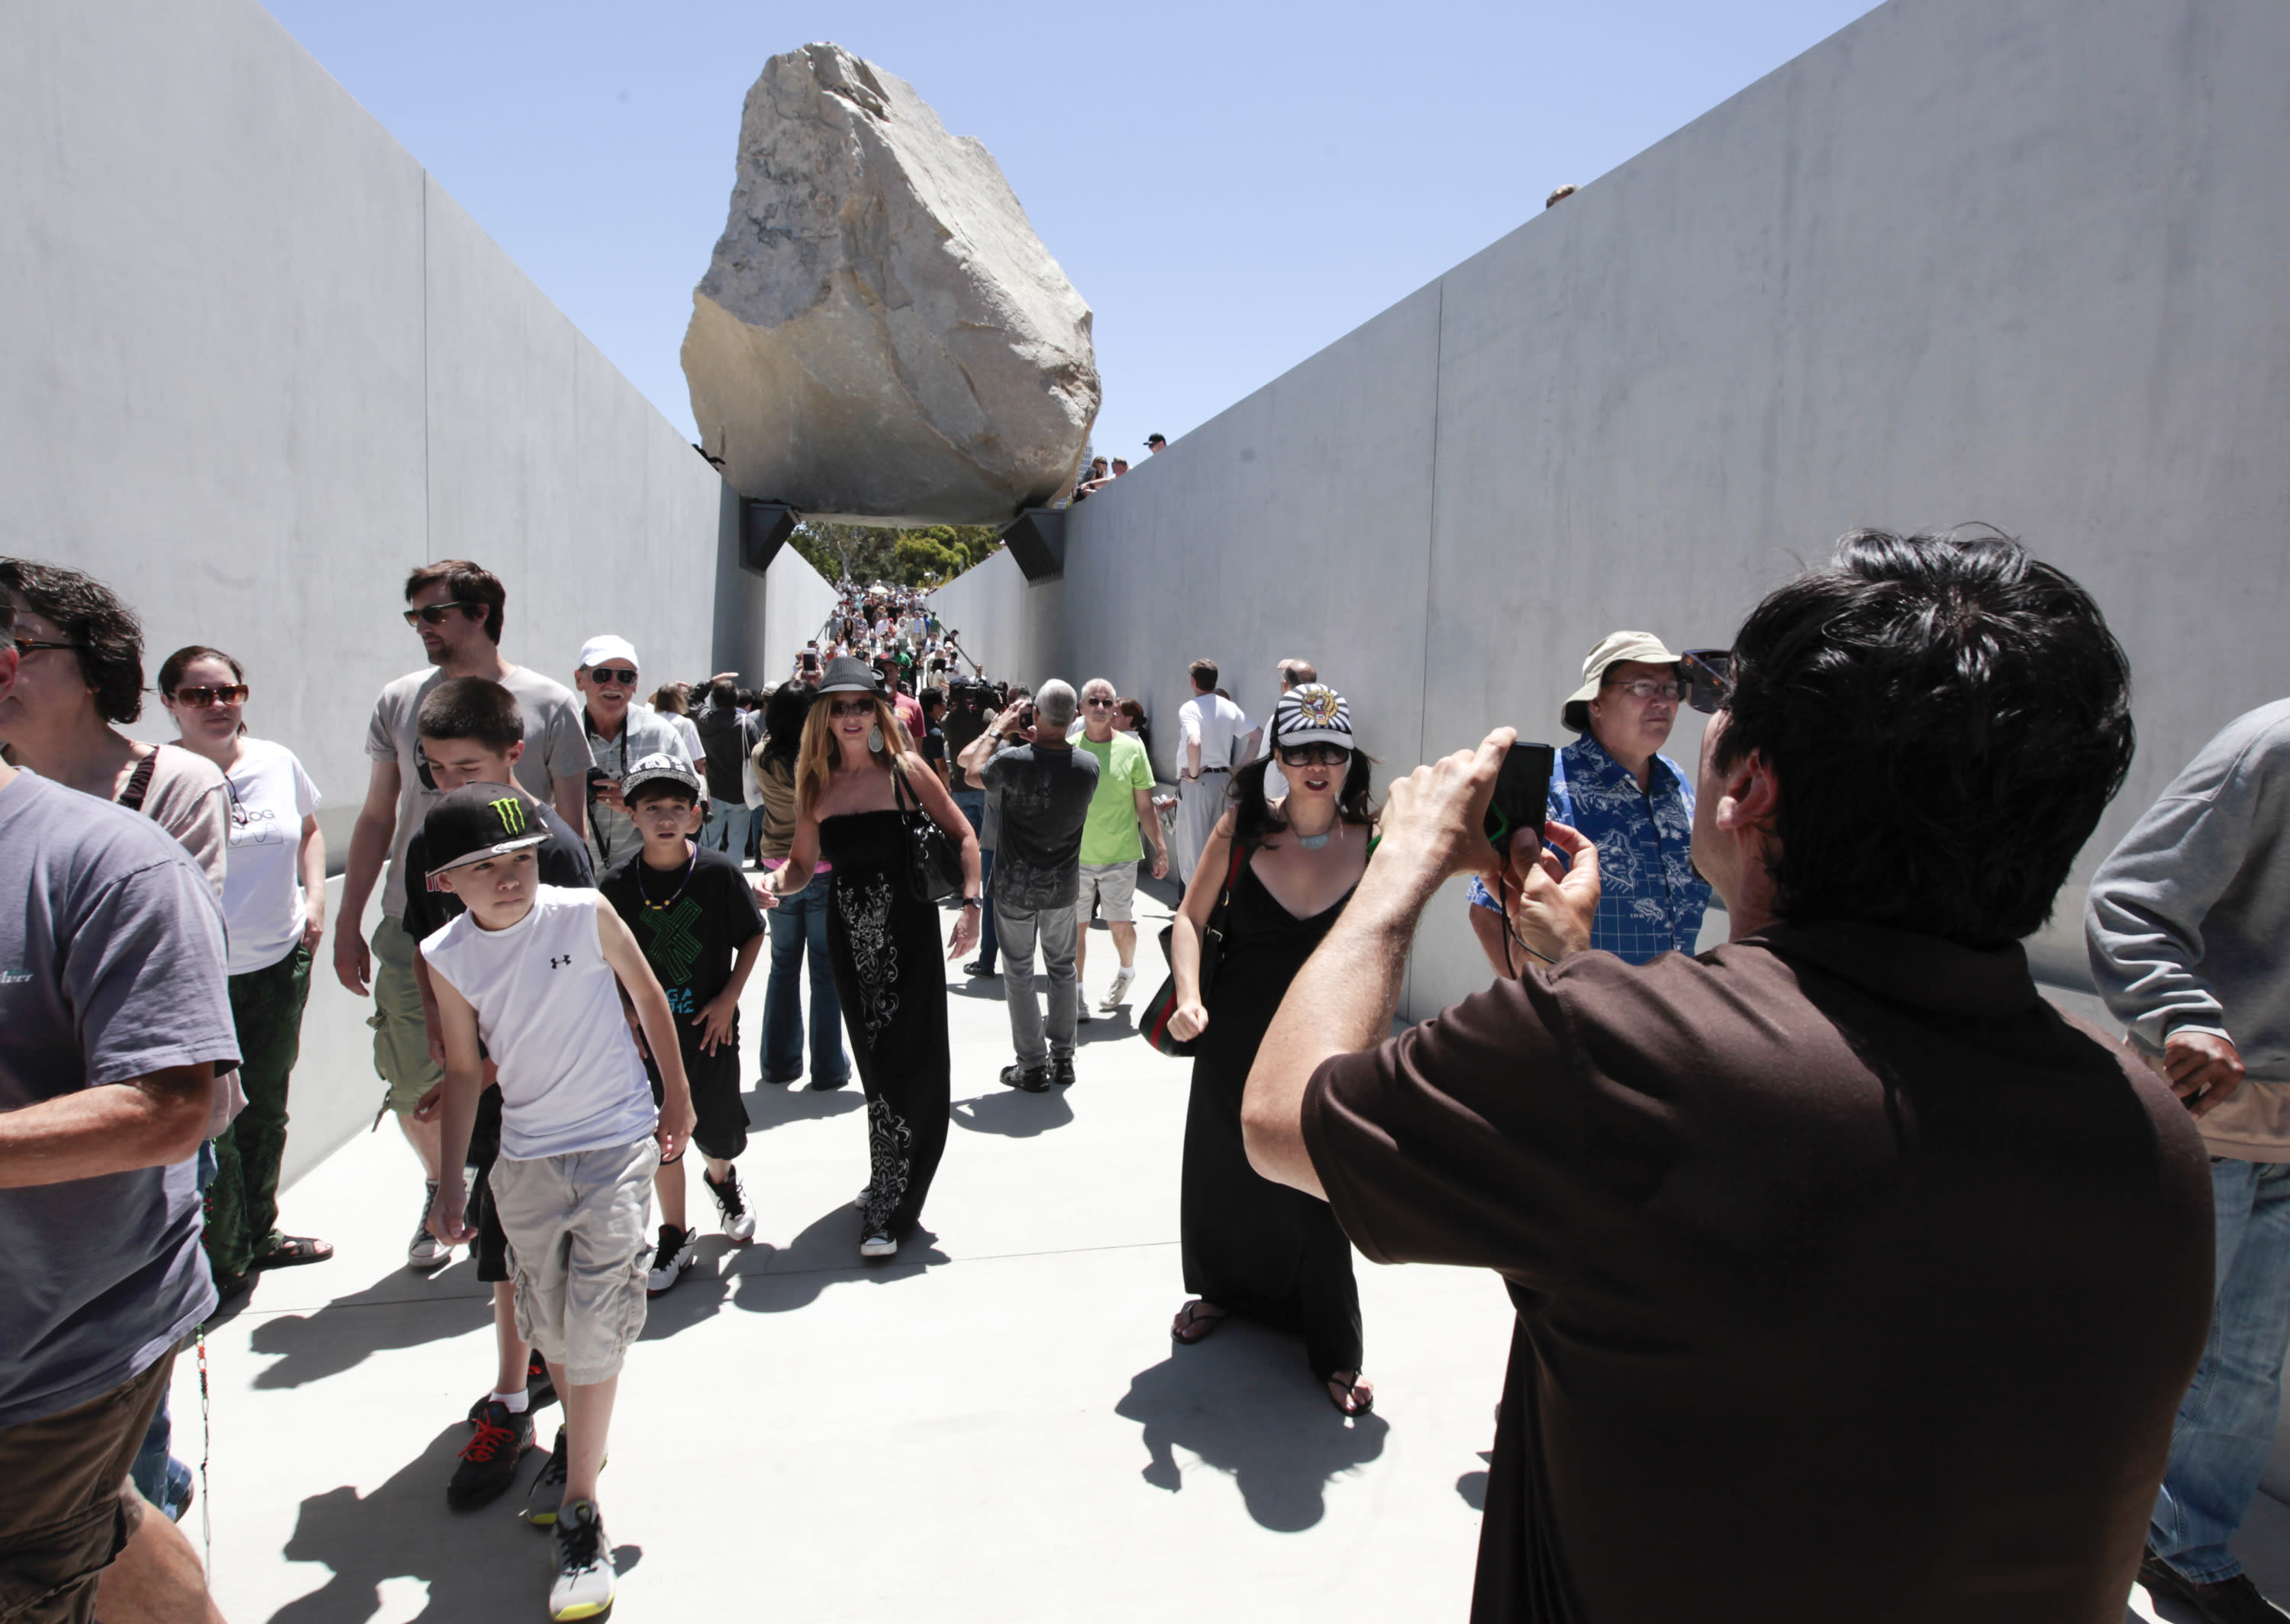 """Visitors view Michael Heizer's """"Levitated Mass"""" at the Los Angeles County Museum of Art in Los Angeles, on Sunday June 24,2012. Thousands showed up as the gigantic work was unveiled on the museum's rear lawn, where it is intended to remain forever. (AP Photo/Richard Vogel)"""